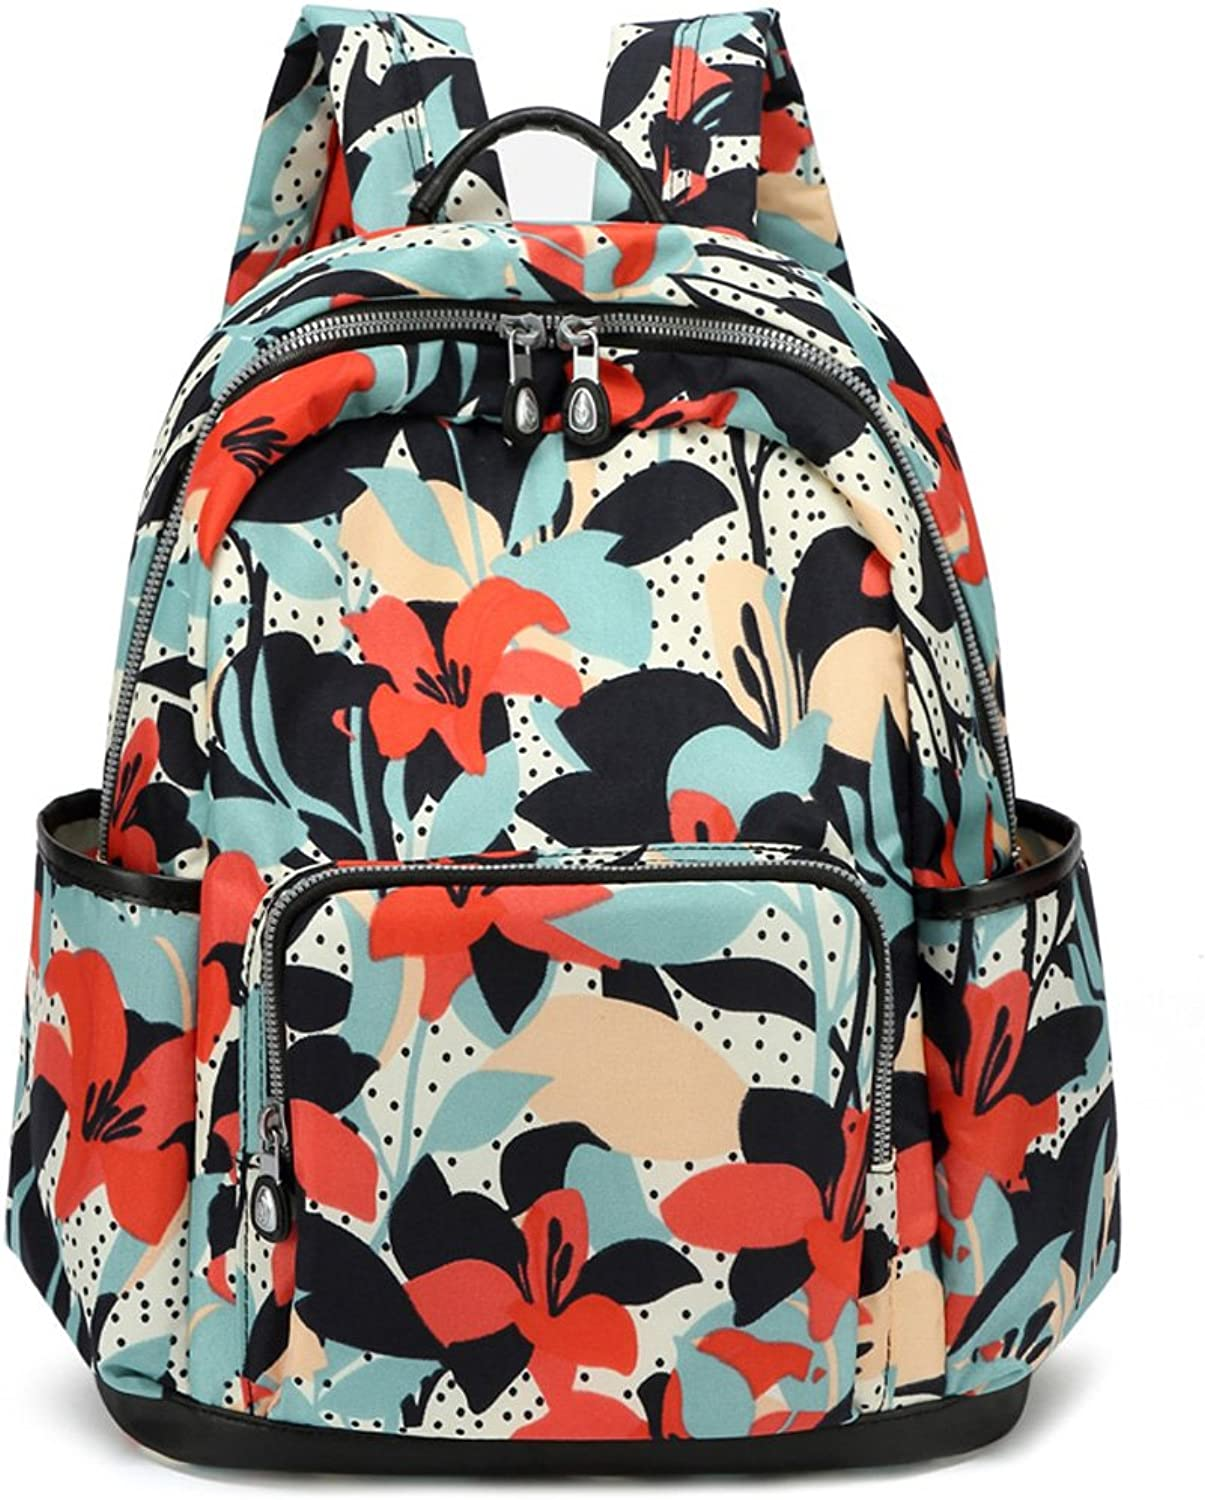 CJH Fashion Leisure Wild Trend Shoulder Bag Printing Oxford Canvas Bag Student Backpack